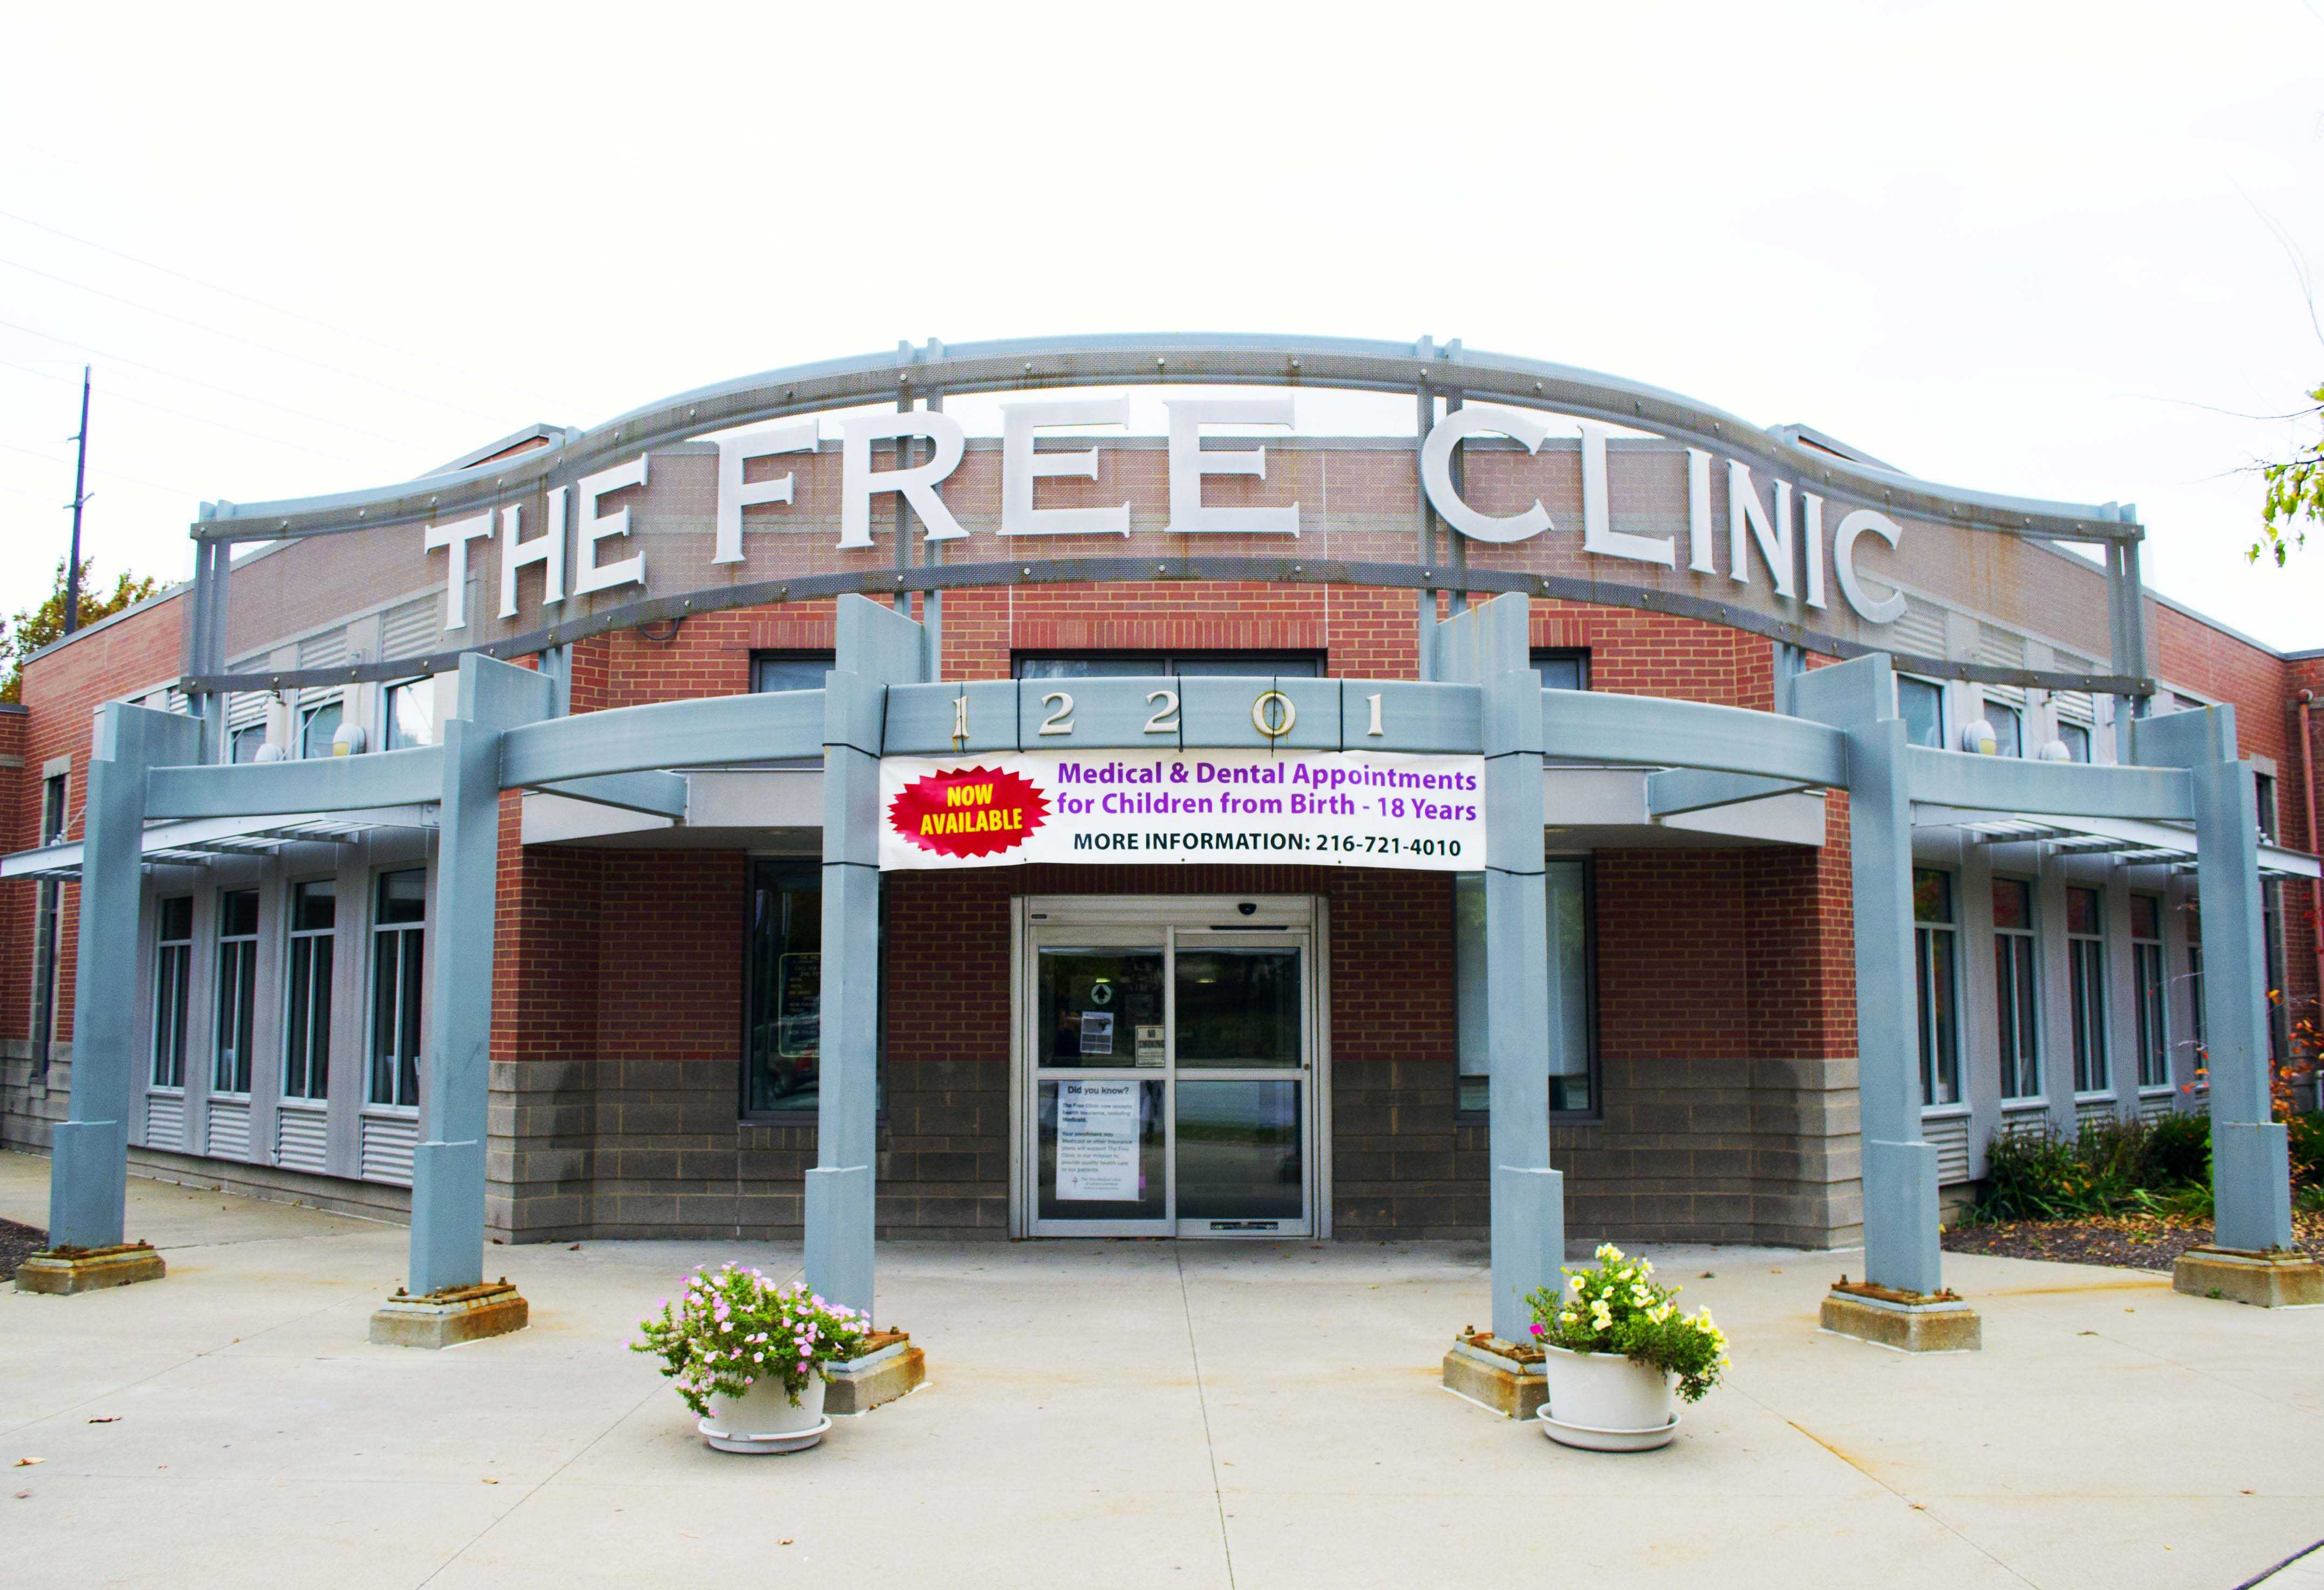 The Free Clinic has had to adapt their policies following the passage of 2010's Affordable Care Act.